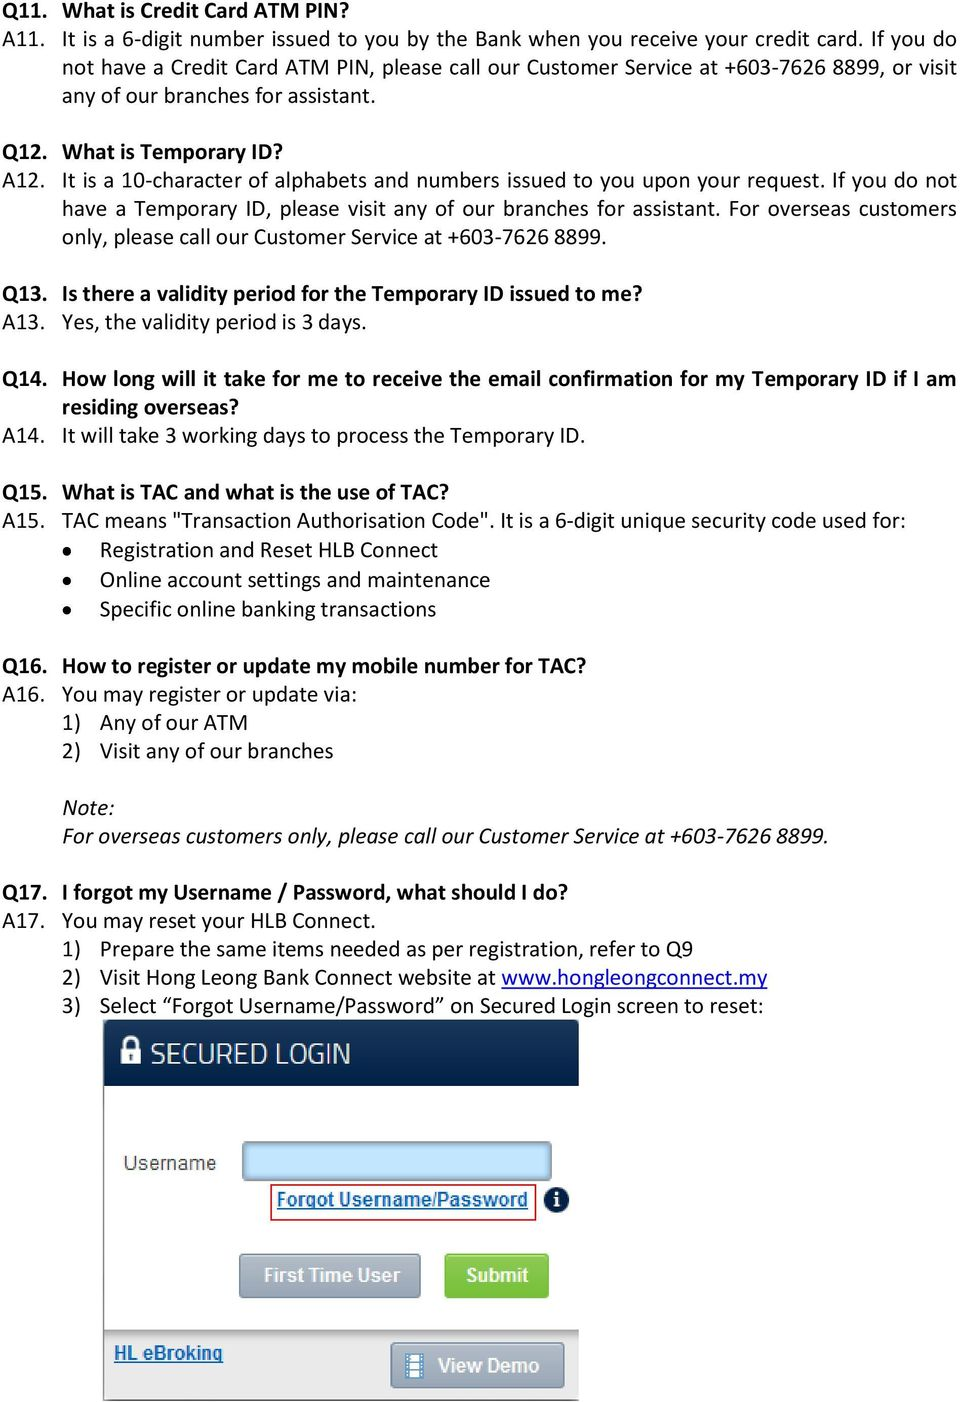 Hong Leong Bank Connect Online Banking Faqs General Pdf Free Download